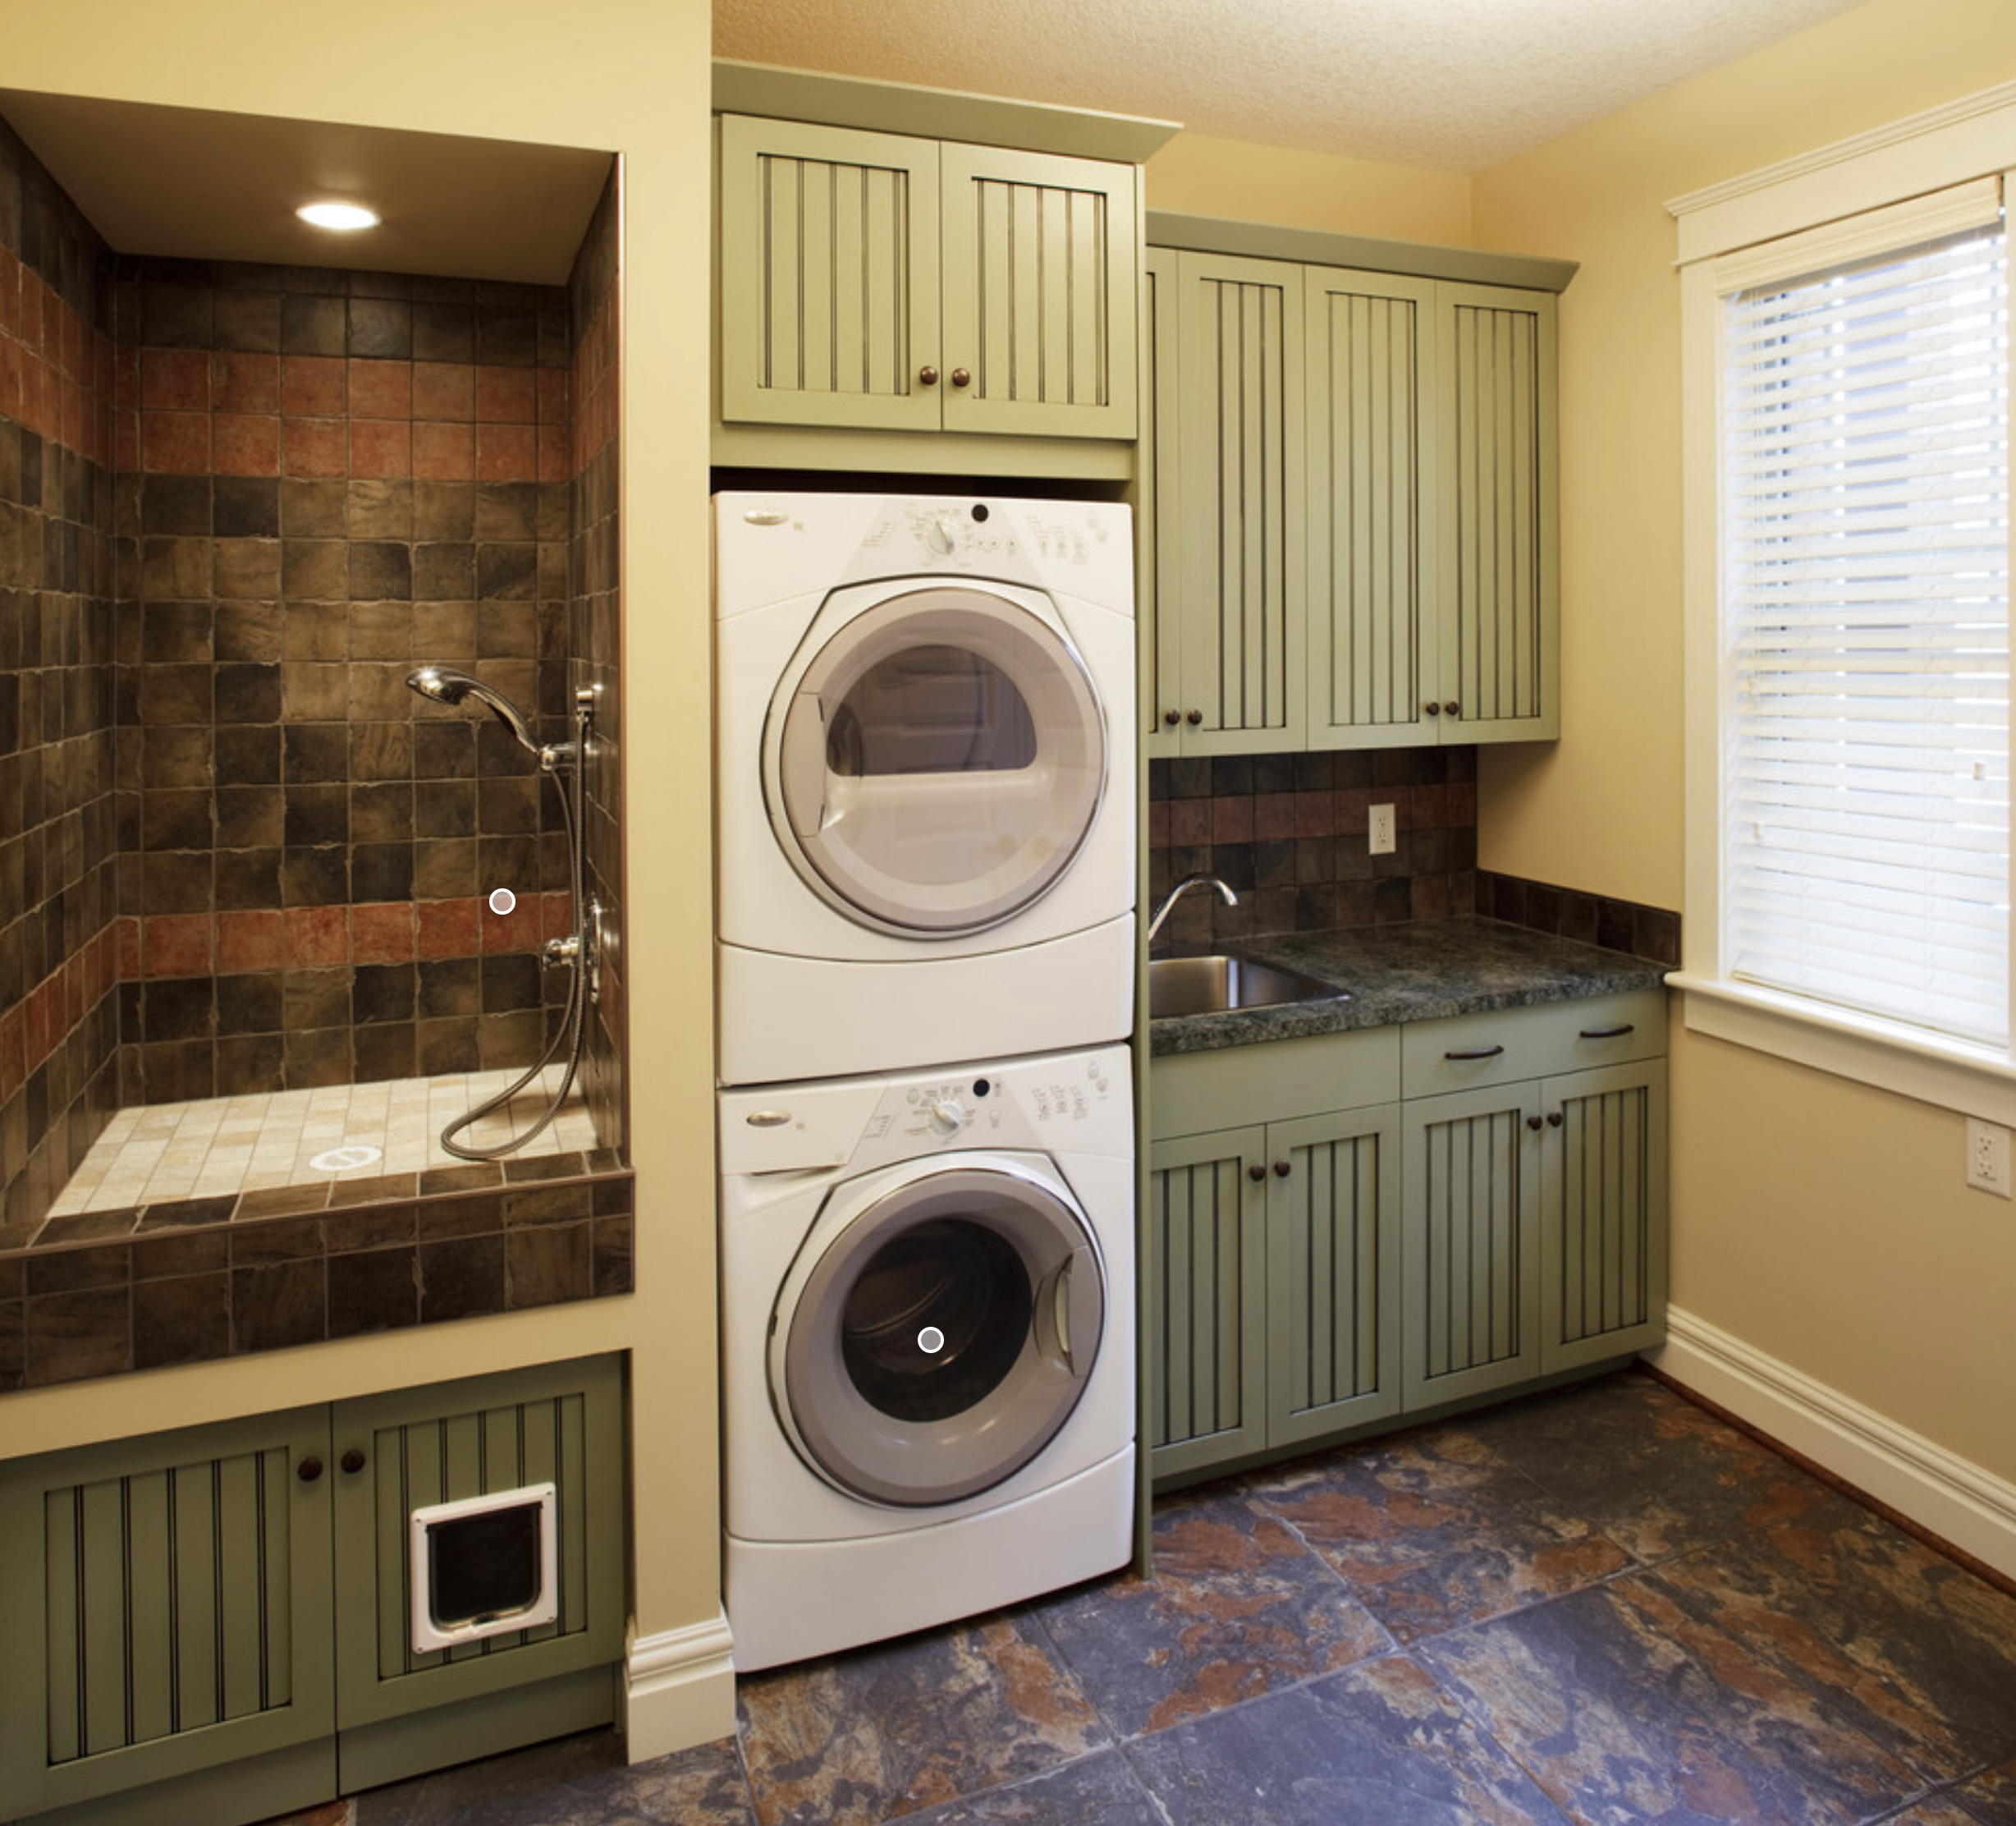 Pin By Allyson Lyons On Laundry Room Inspiration Laundry Room Design Laundry Room Storage Laundry Mud Room